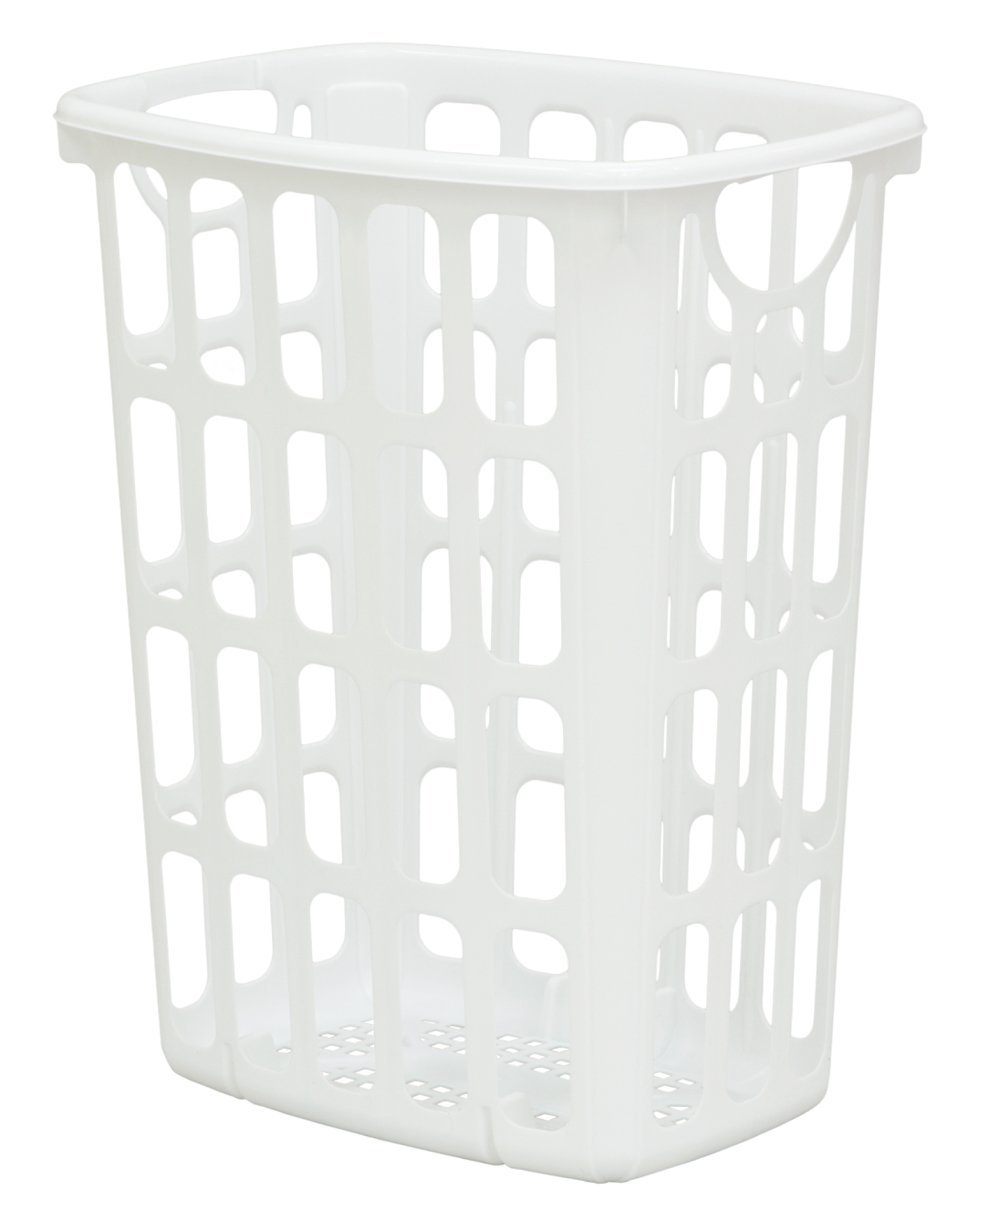 United Solutions LN0205 Two Bushel White AIRitOUT Laundry Hamper -2 Bushel White Hamper with Pass Through Handles Designed for Maximum Airflow